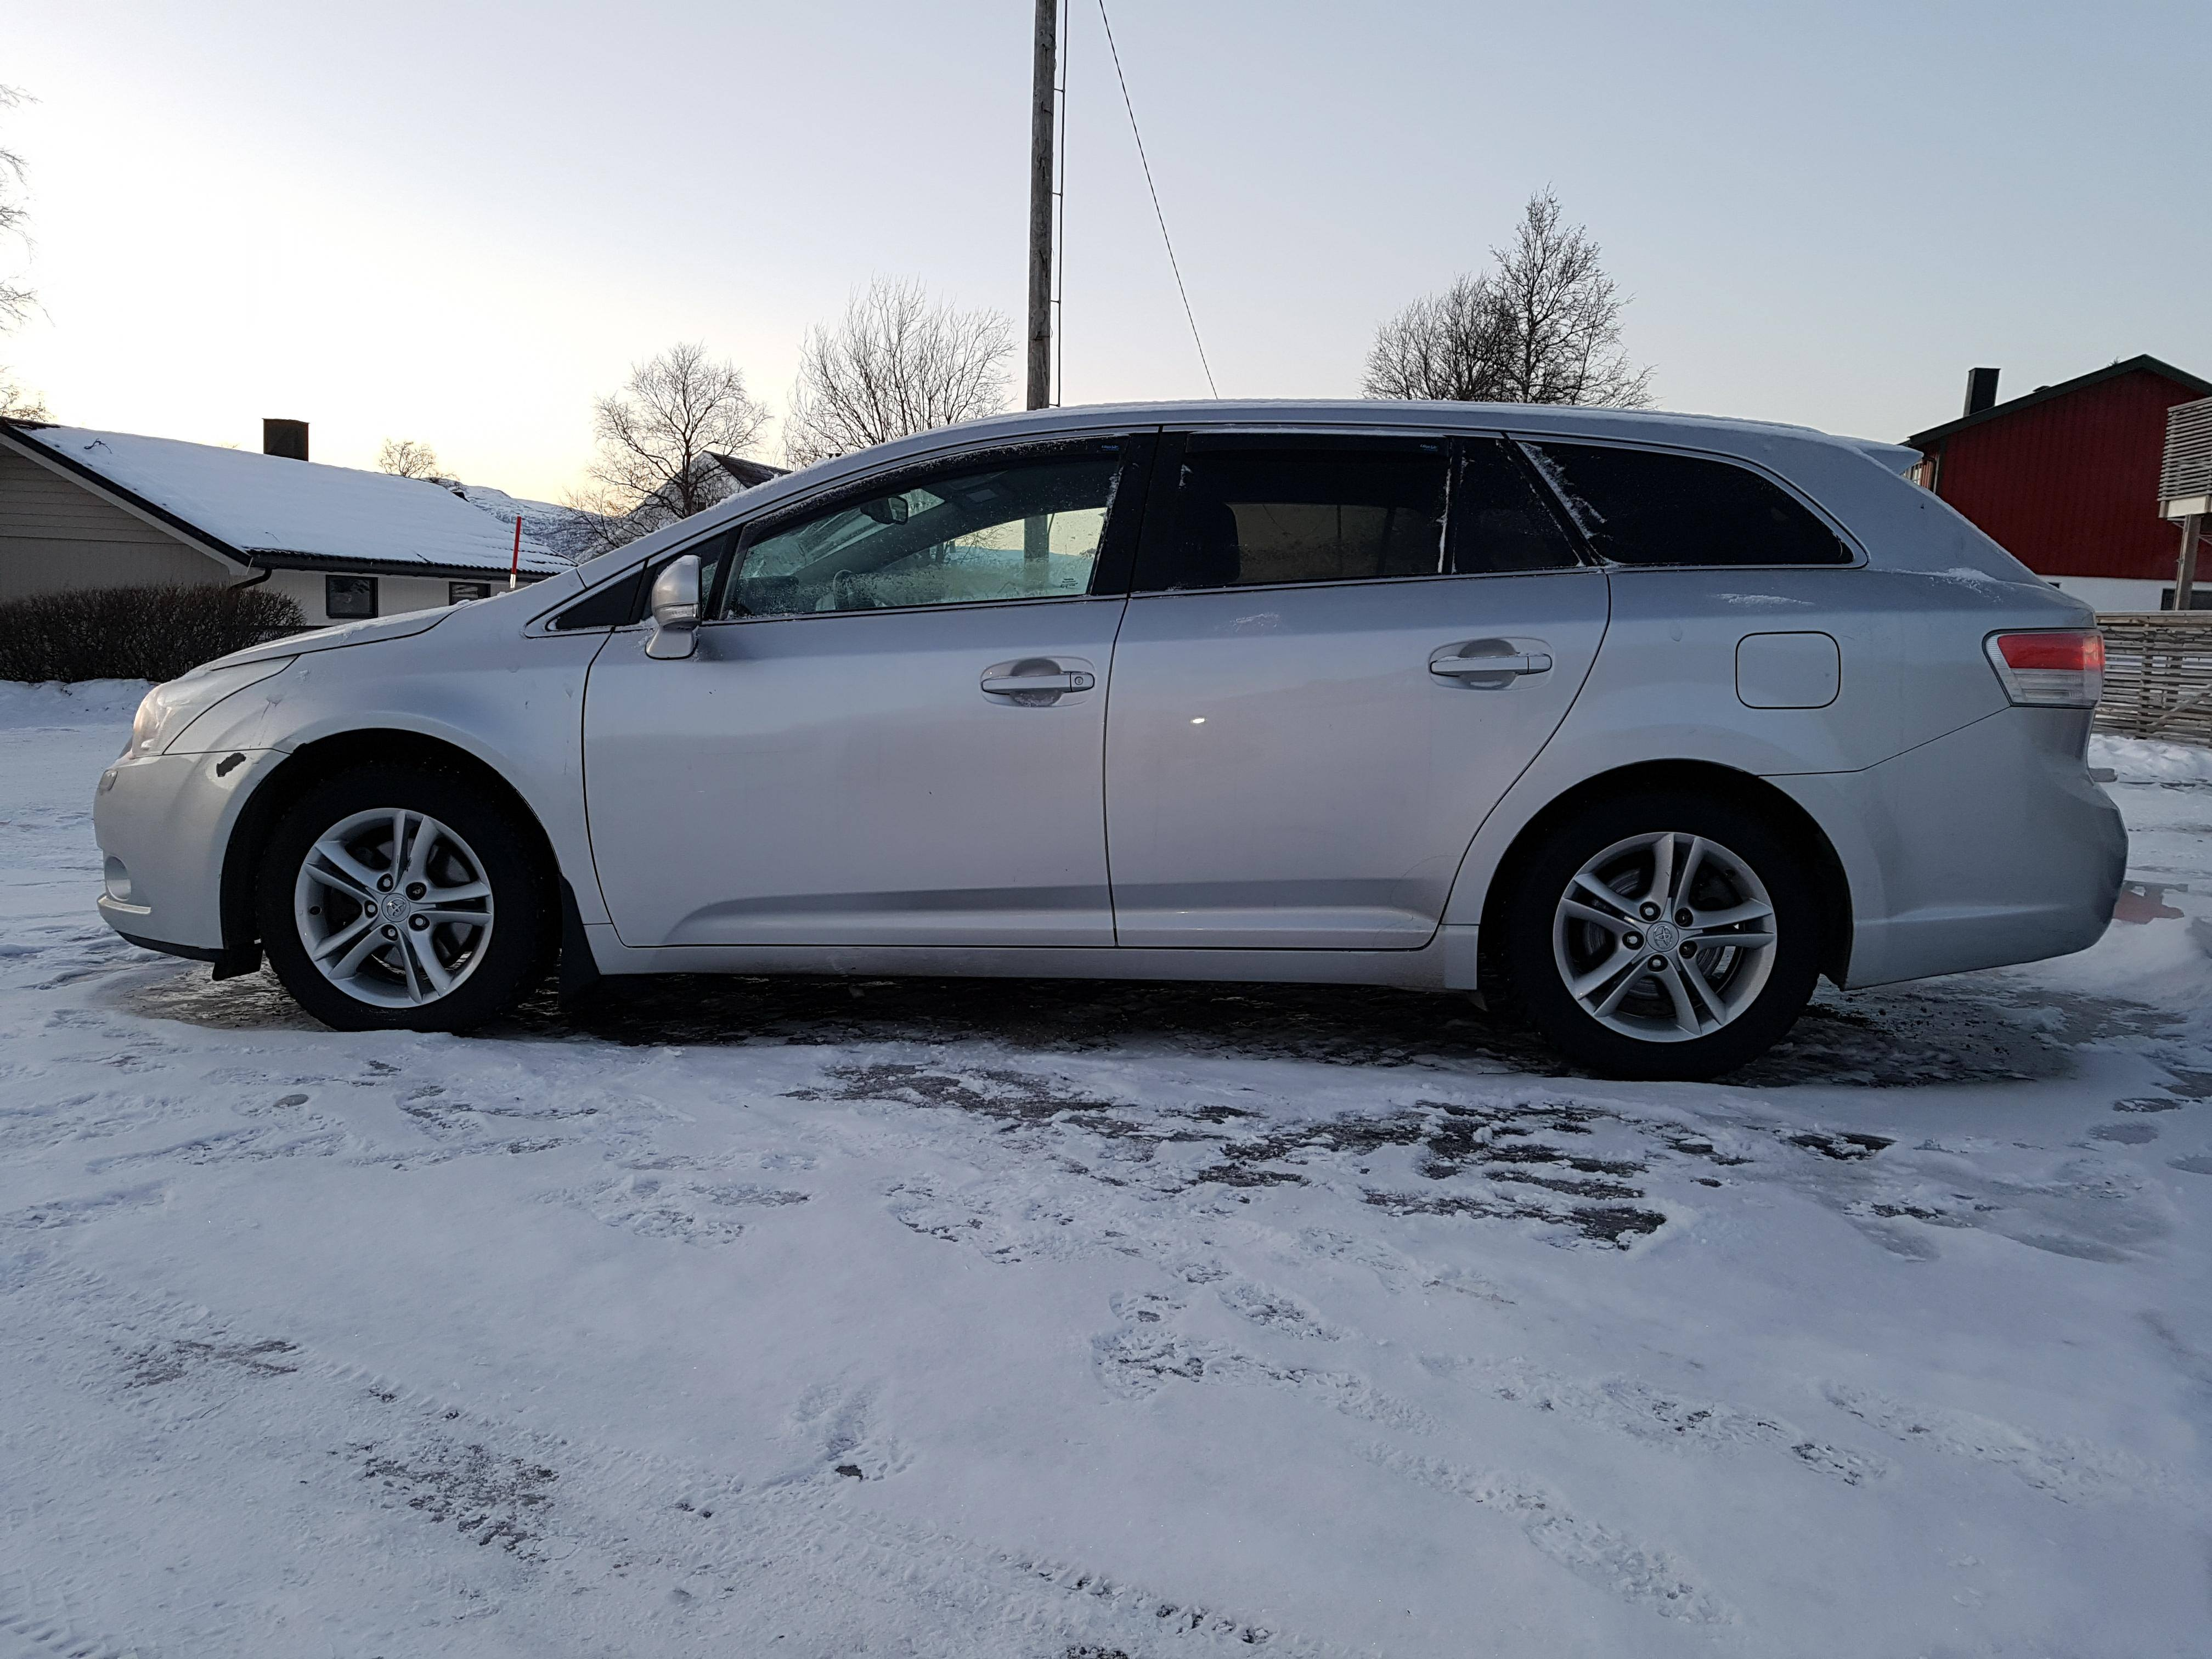 Car Rental In Fauske Budget Rent A Wreck Automotivepictures 4163321997sc1alternatorwirediagram1jpg Toyota Avensis 2009 Modell